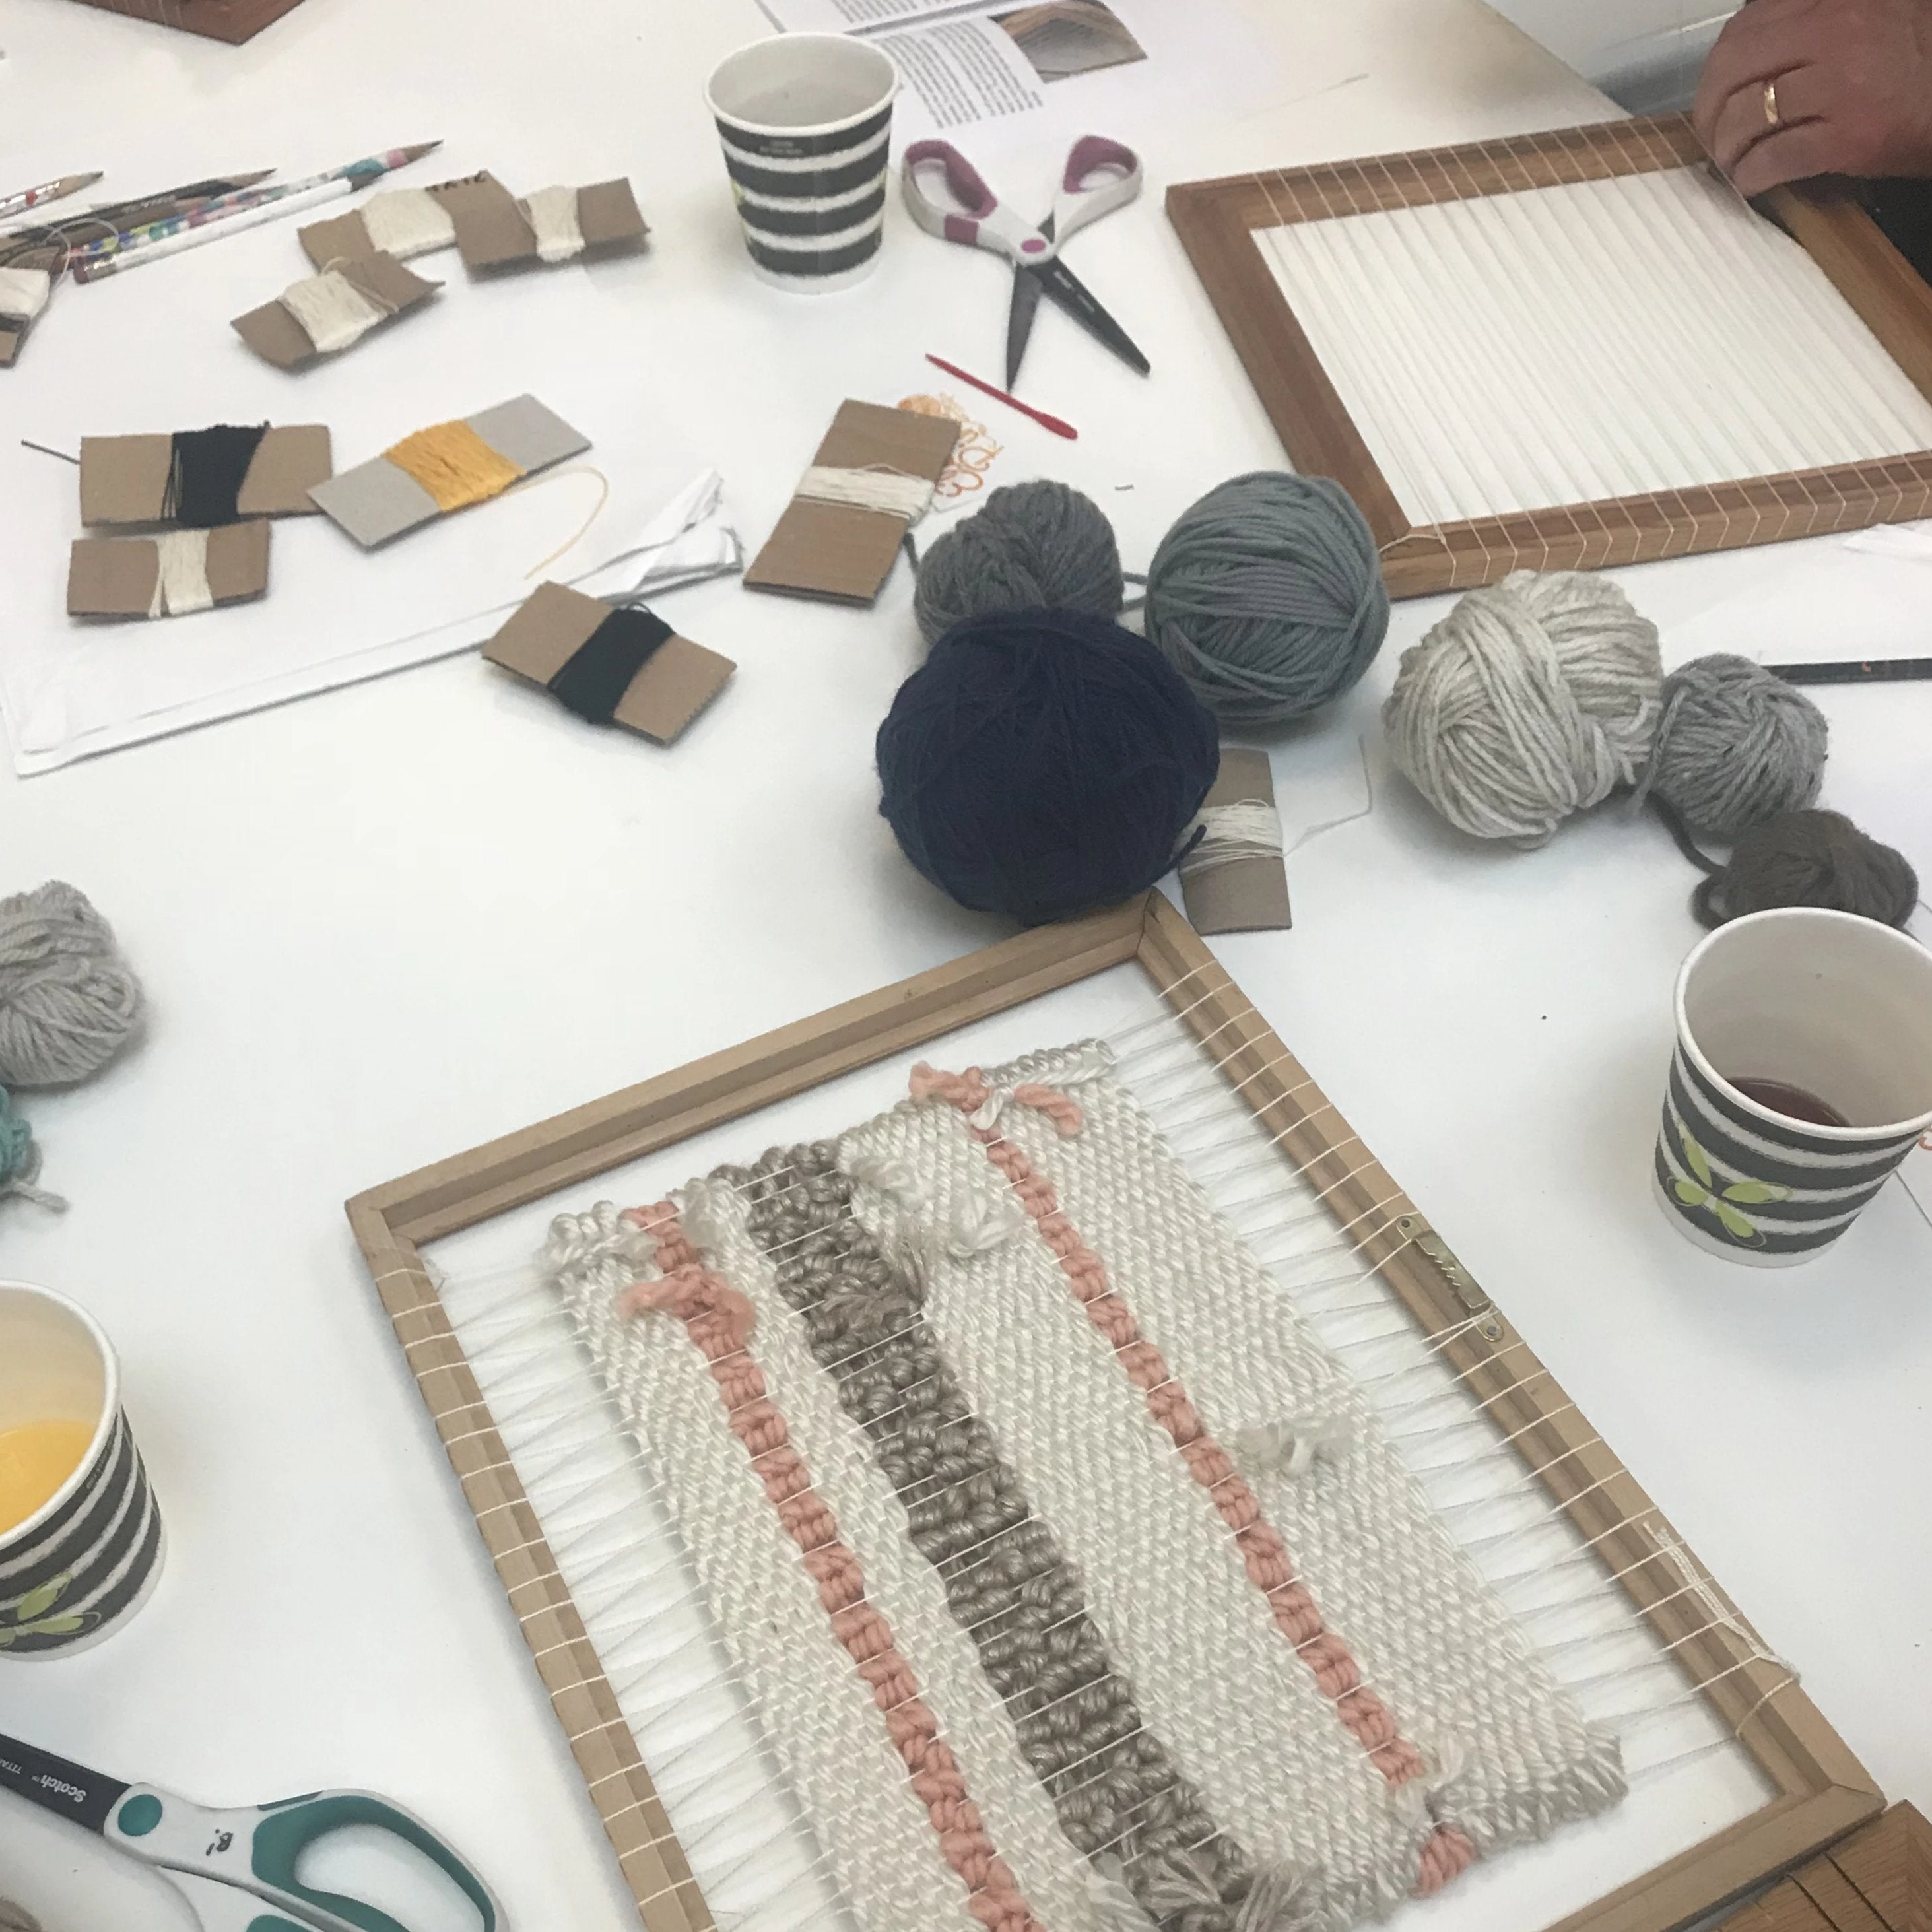 2020 - 02/15 Weaving Workshop: Framed Wall Hanging on Saturday February 15 at 10am